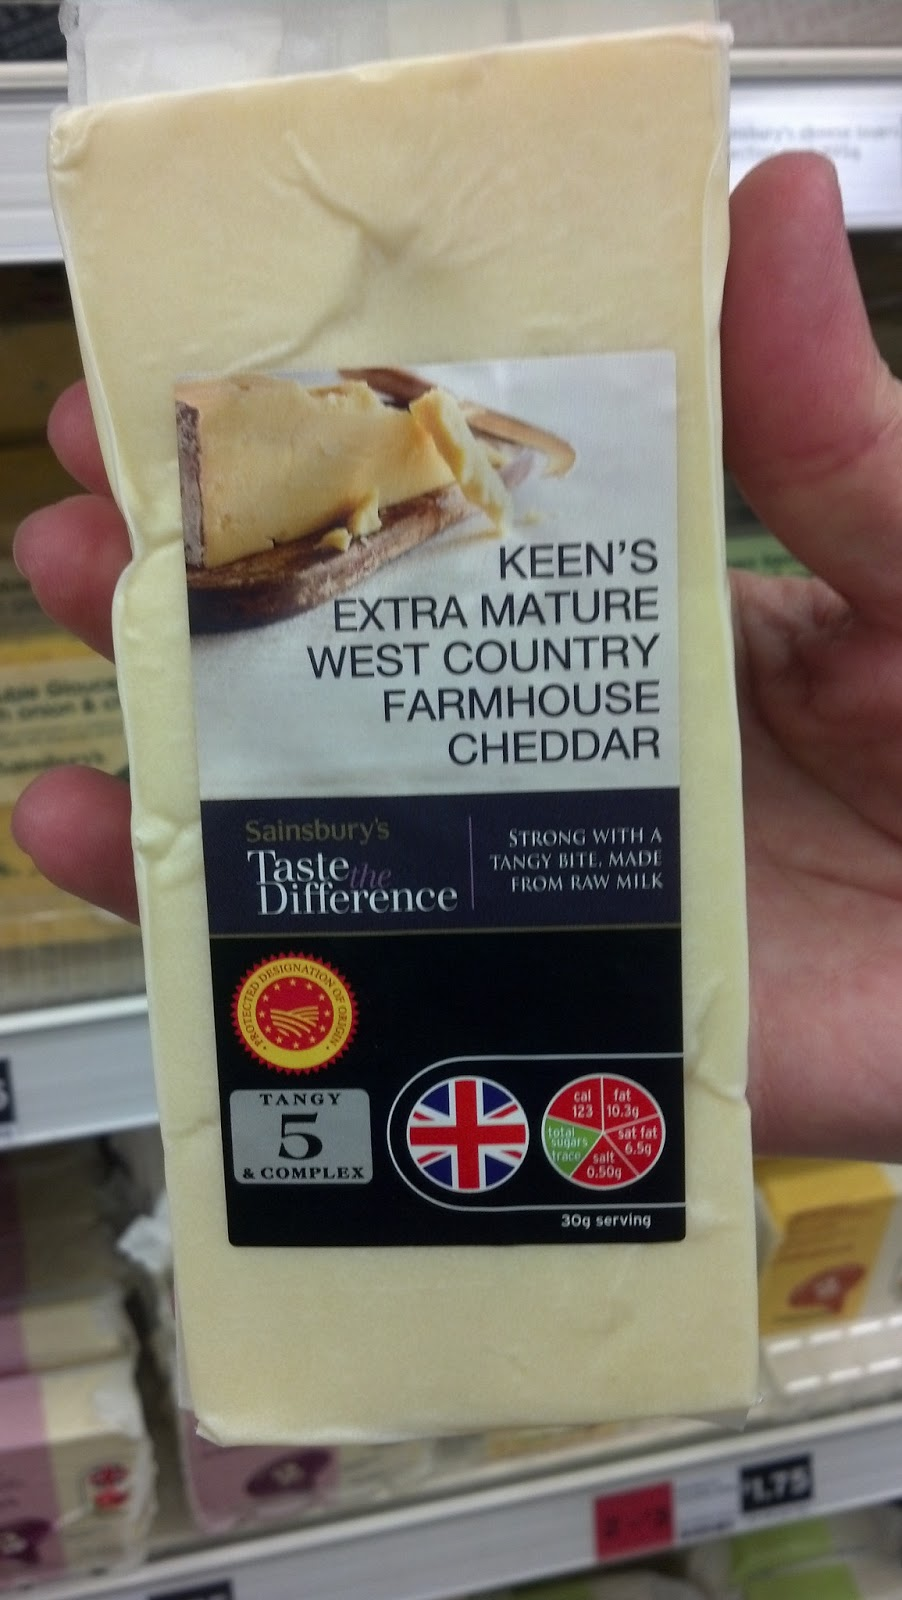 Image shows wedge of Keen's Extra Mature West Country Farmhouse Cheddar